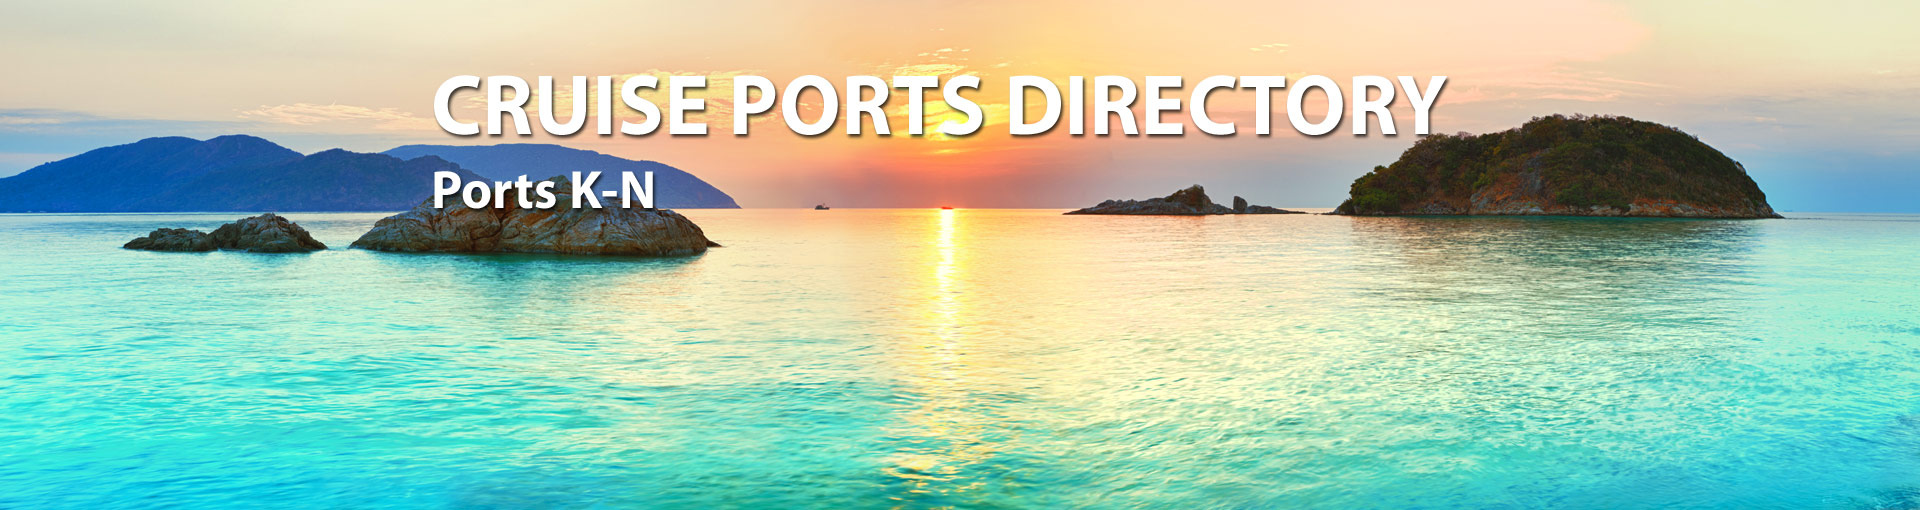 Cruise Ports Directory, Page 3